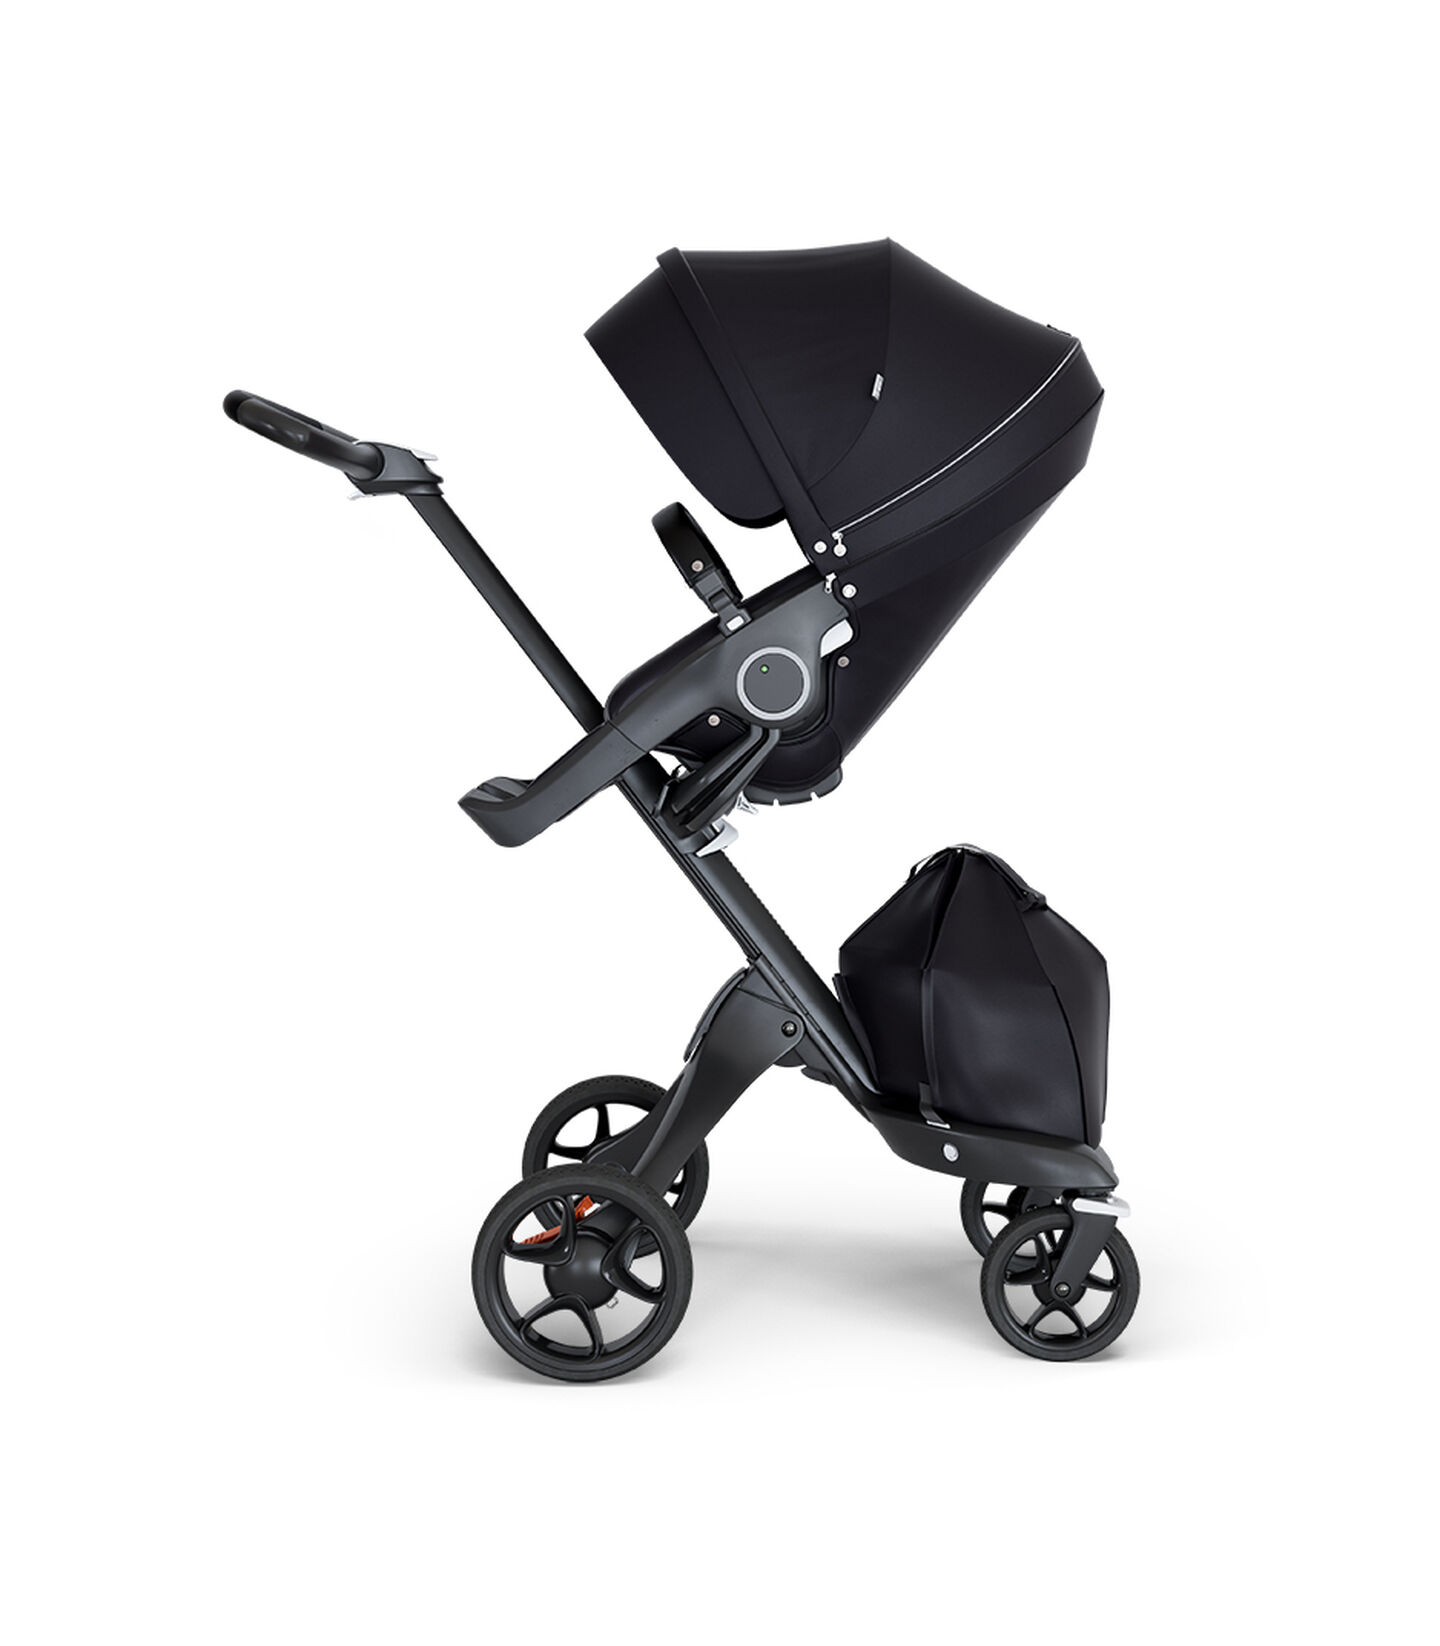 Stokke® Xplory® wtih Black Chassis and Leatherette Black handle. Stokke® Stroller Seat Black.